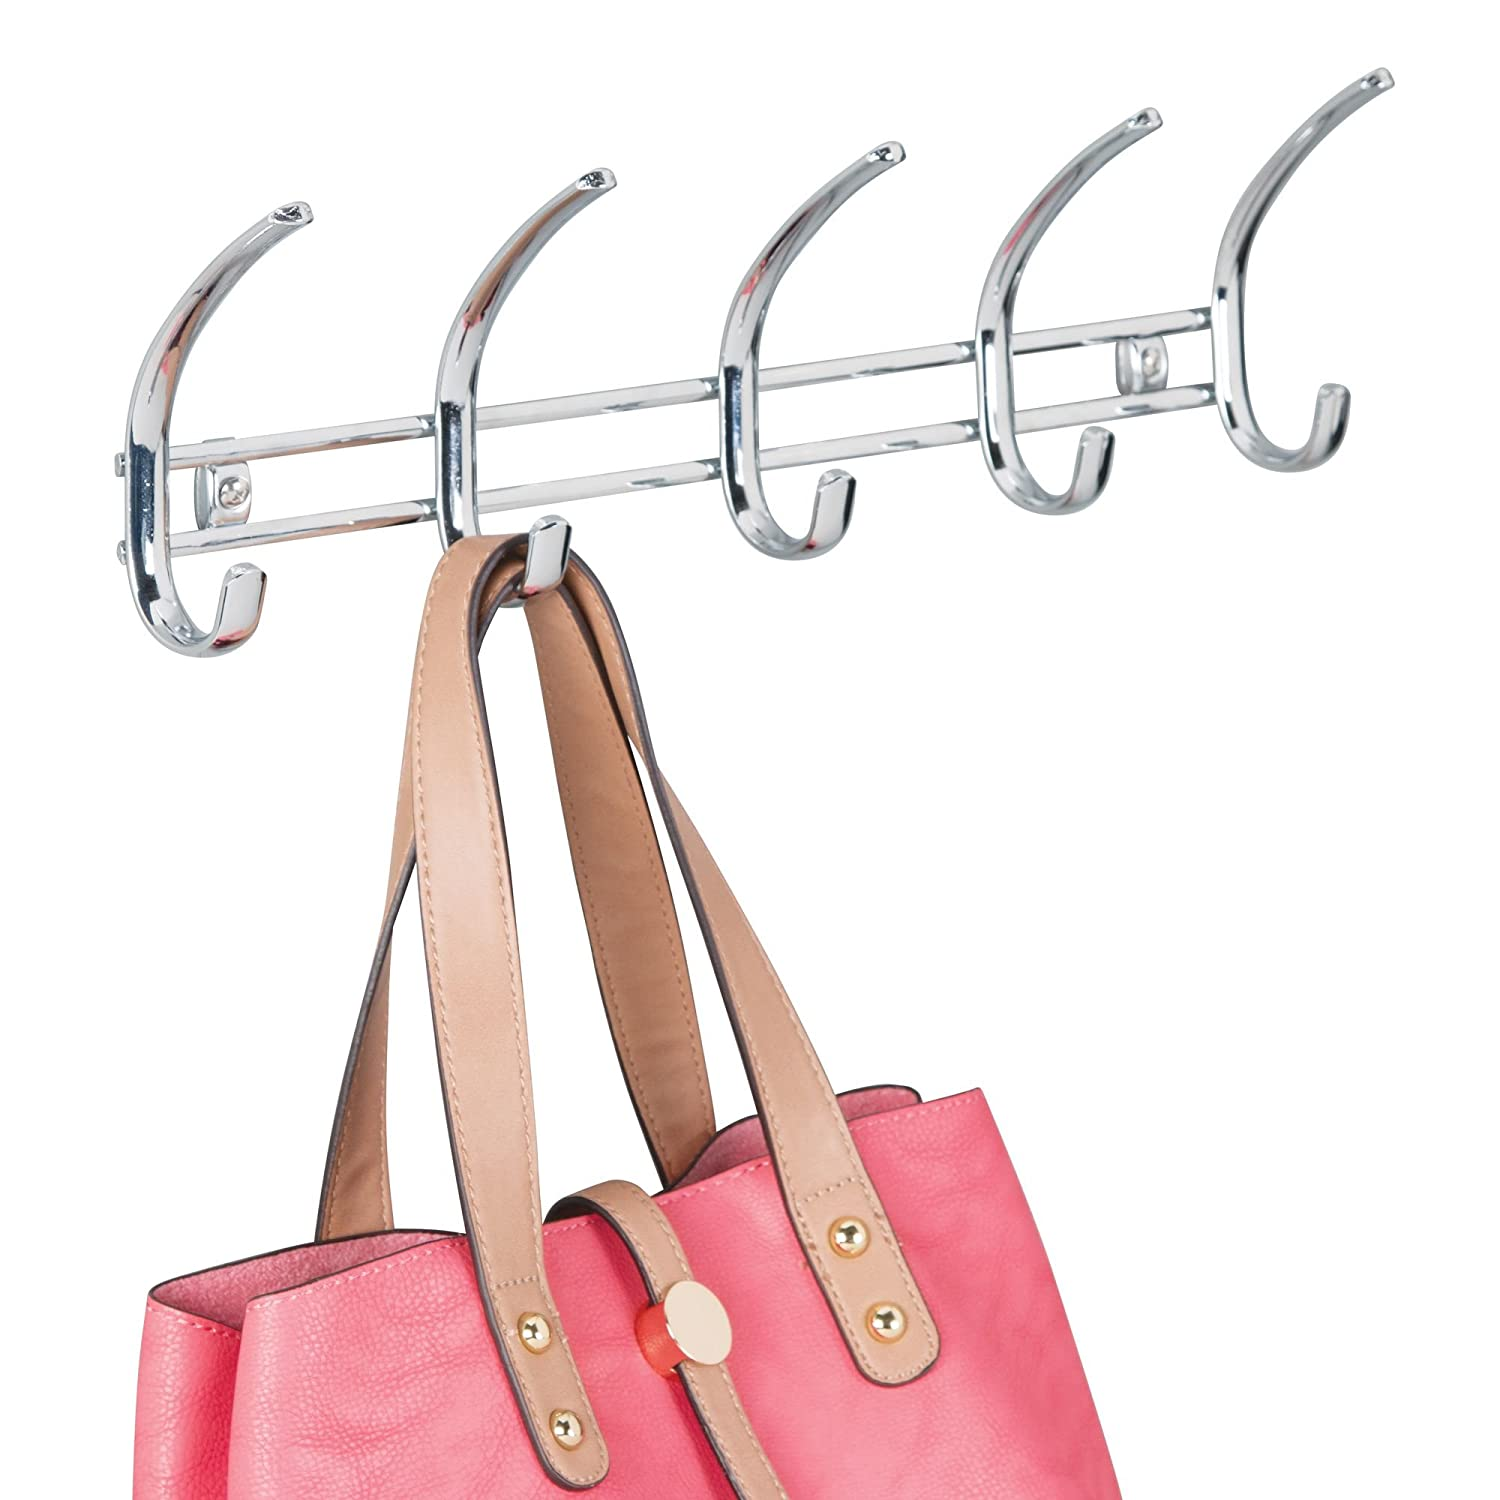 Leashes 10 Hooks Scarves mDesign Modern Metal Wall Mount Hanging Storage Organizer Rack for Coats Hoodies Bath Towels 10 Hooks Robes Purses Chrome MetroDecor Chrome Men and Women/'s Clothing Men and Womens Clothing Hats